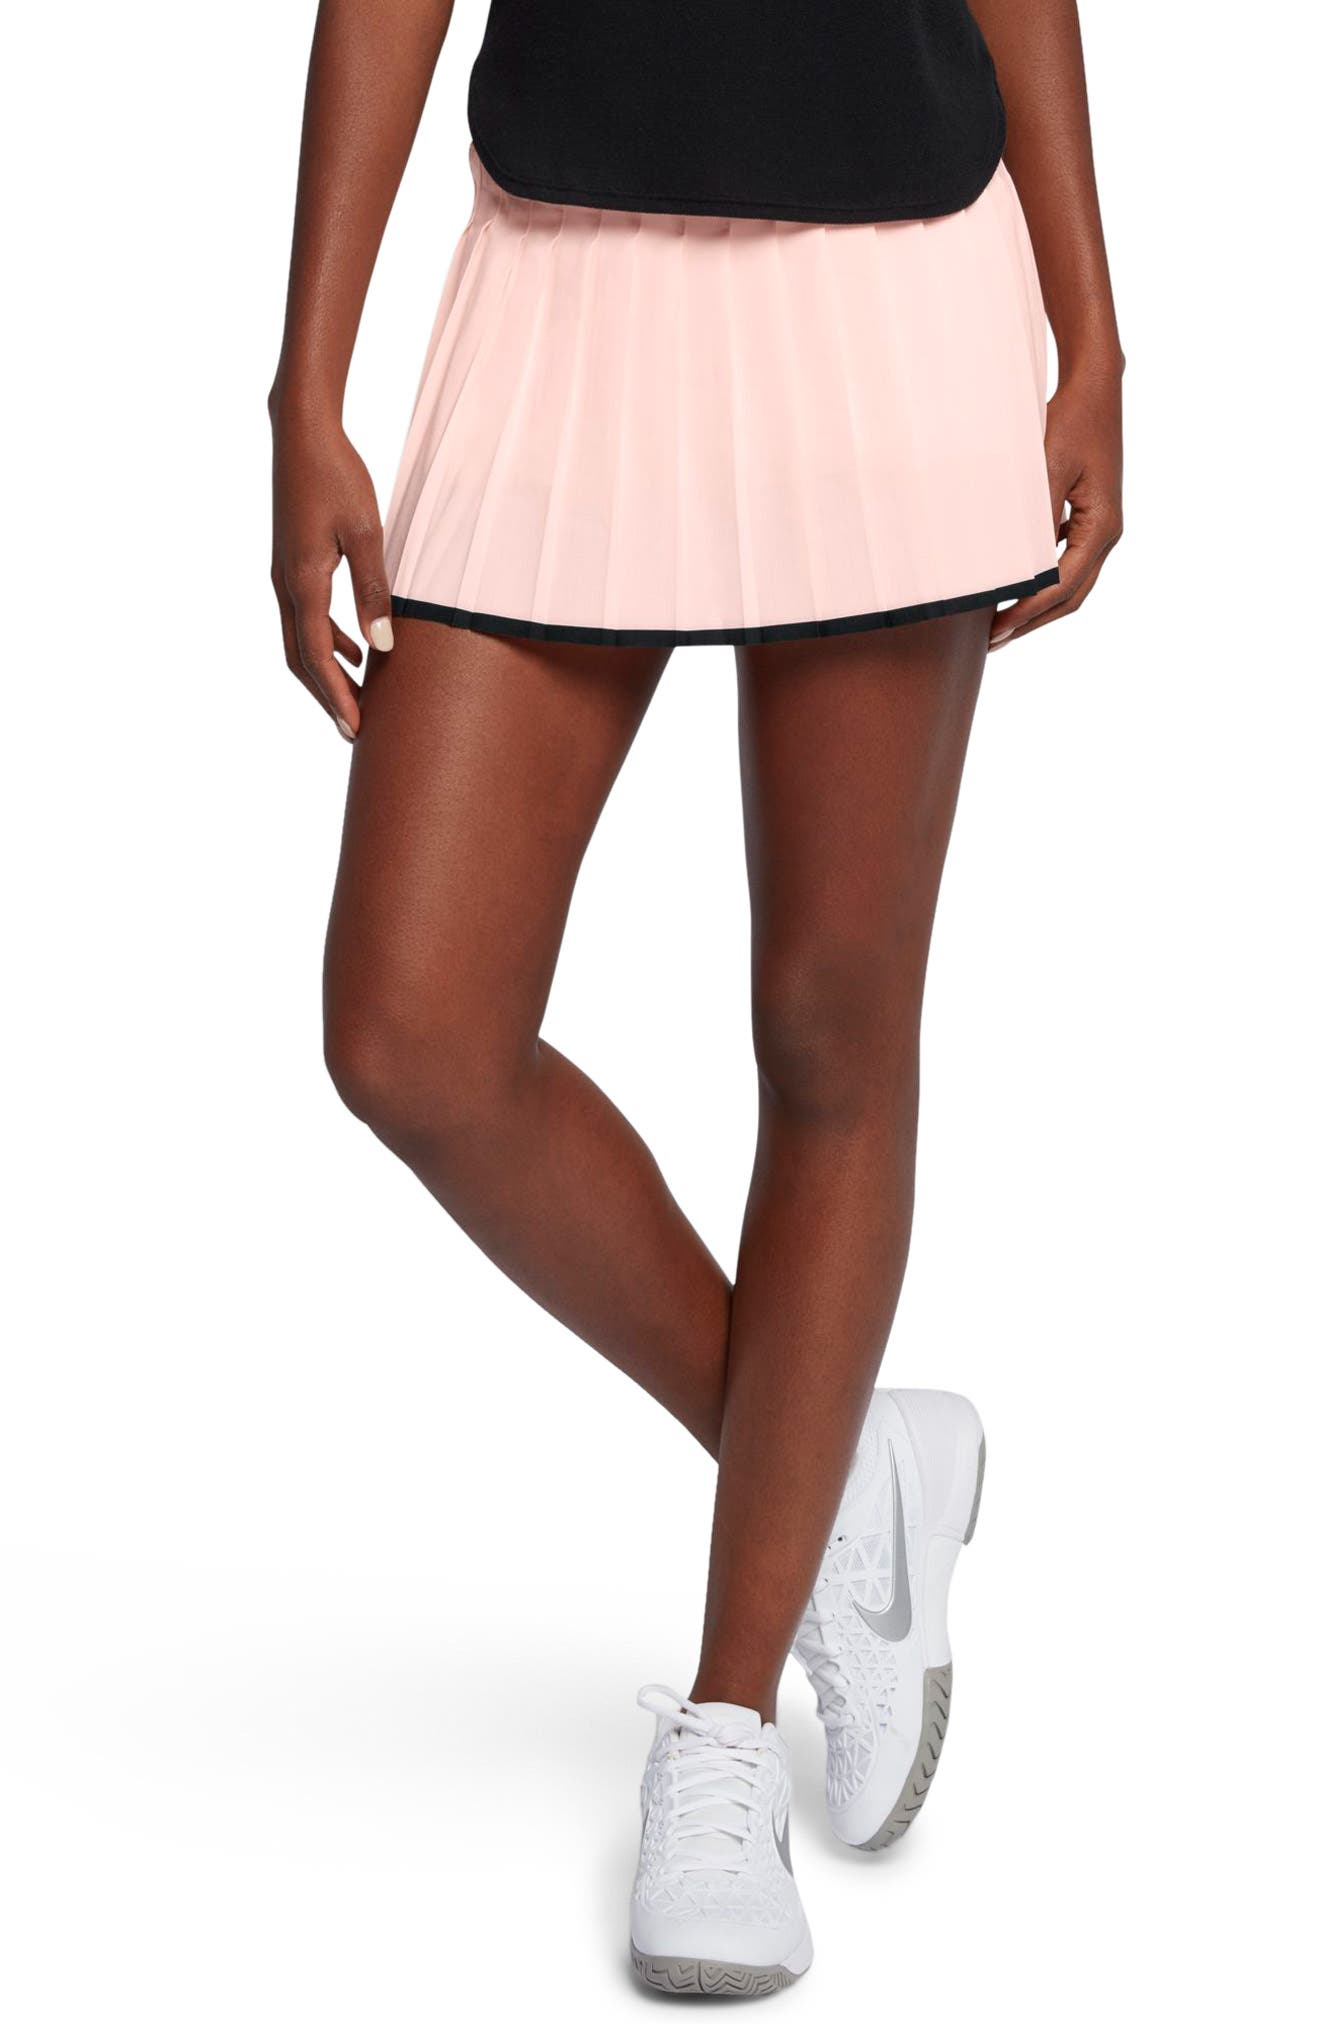 Women's Court Victory Tennis Skirt,                             Main thumbnail 1, color,                             959